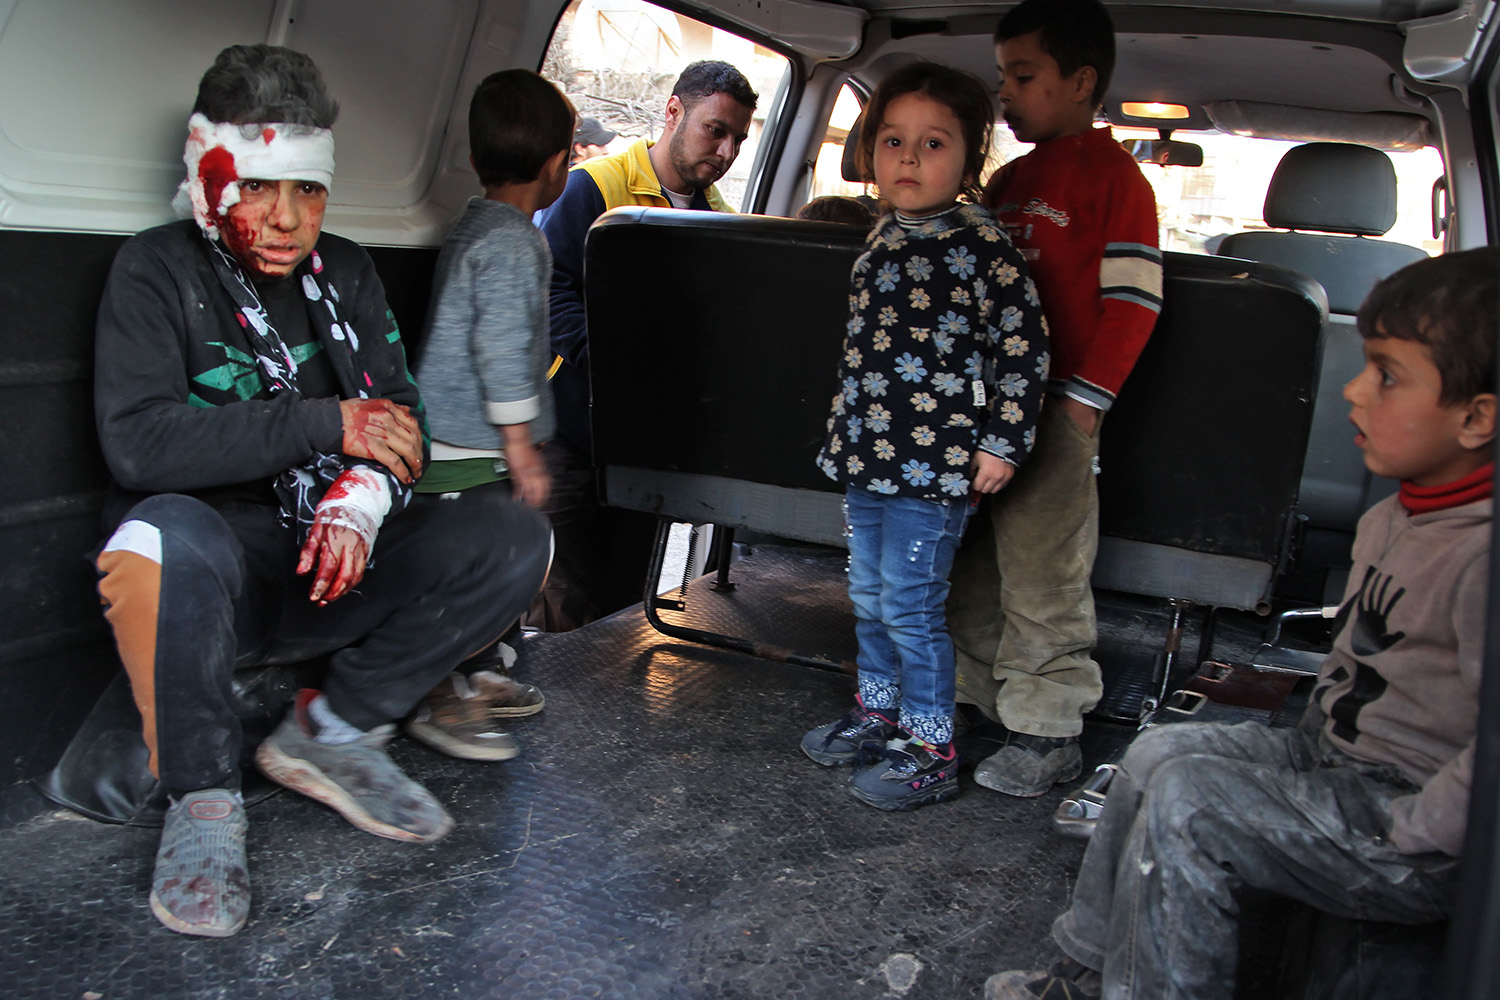 Syrian children sit inside a vehicle as they are evacuated from the scene of a pro-regime forces air strike in Maarrat Misrin in Syria's northwestern Idlib province on Feb. 25. ABDULAZIZ KETAZ/AFP via Getty Images